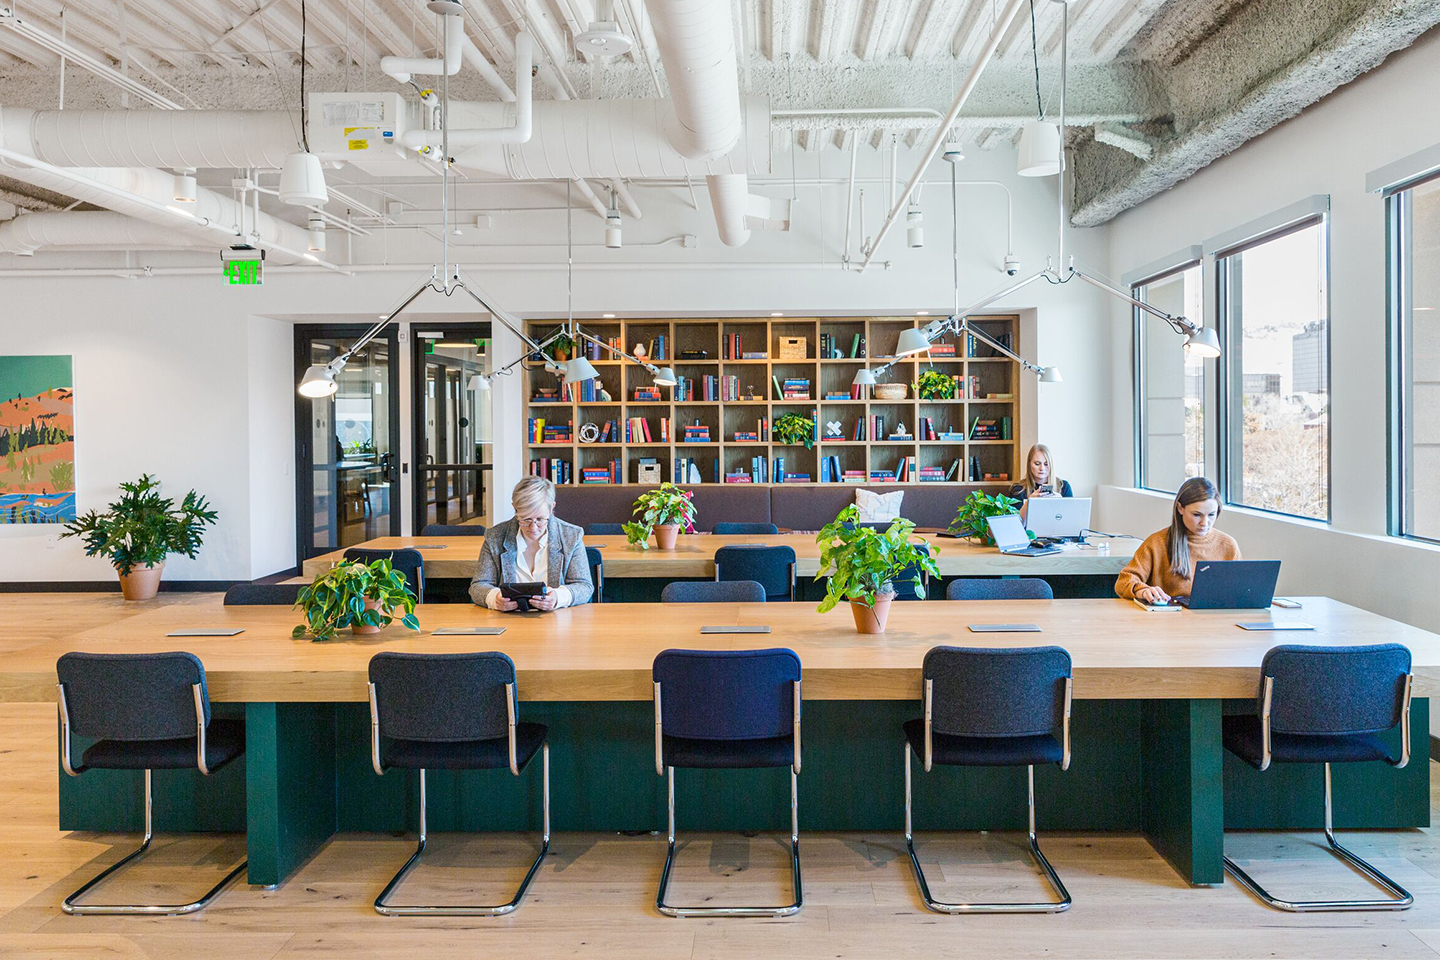 WeWork Gateway 1 in Salt Lake City. Photographs by WeWork